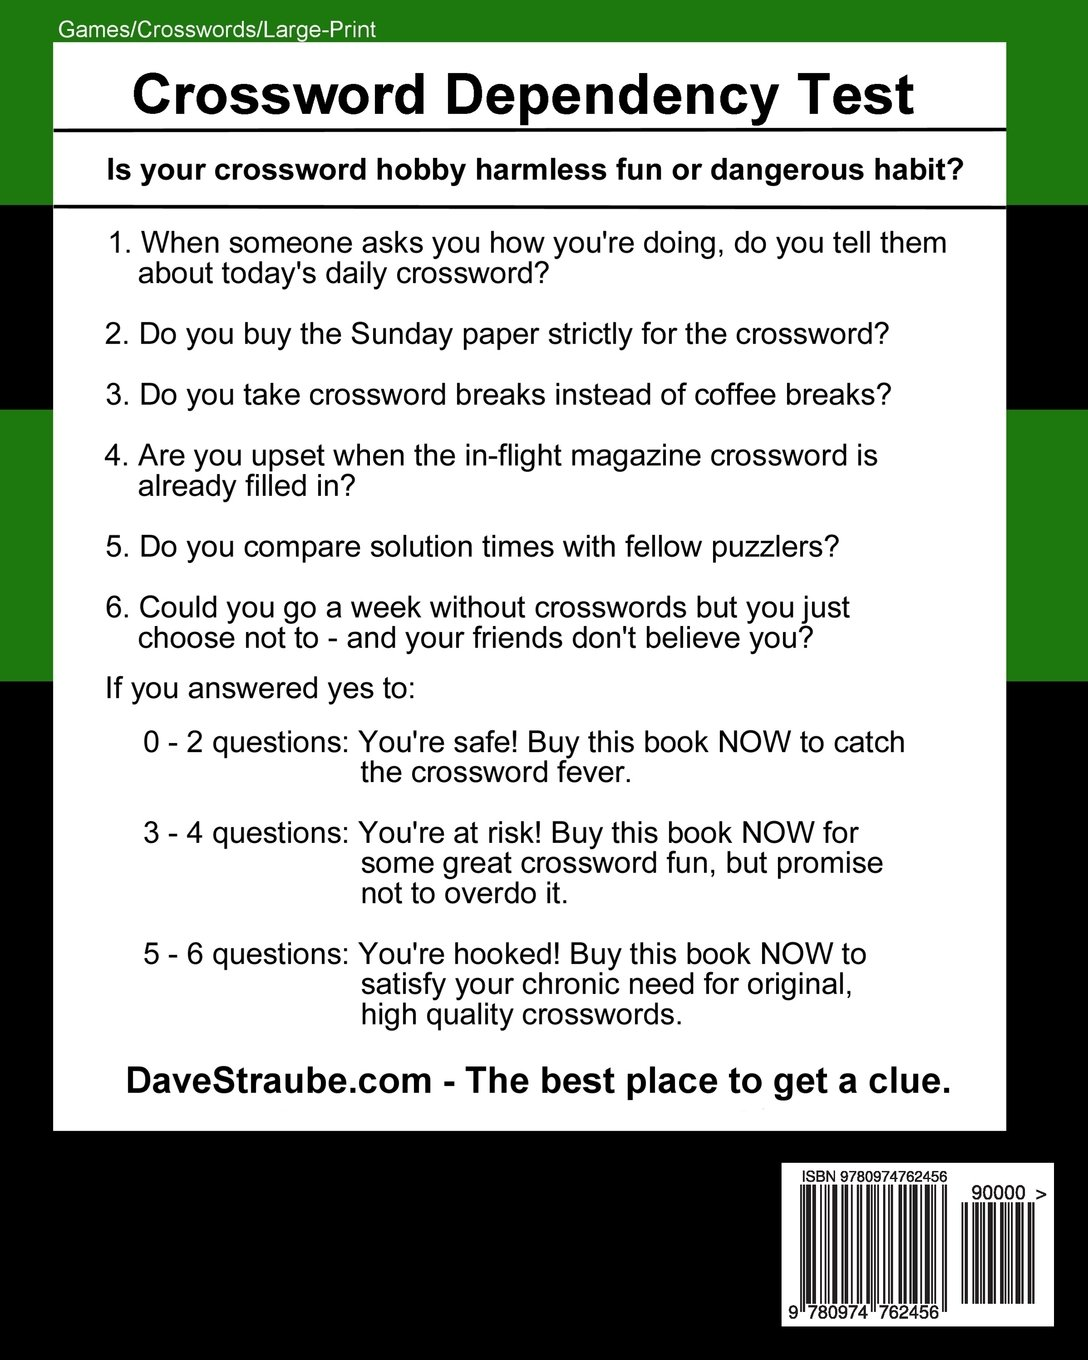 Not Your Typical Large-Print Crosswords #2 - Golf From Tee to Green Dave Straube 9780974762456 Amazon.com Books  sc 1 st  Amazon.com & Not Your Typical Large-Print Crosswords #2 - Golf: From Tee to ... 25forcollege.com